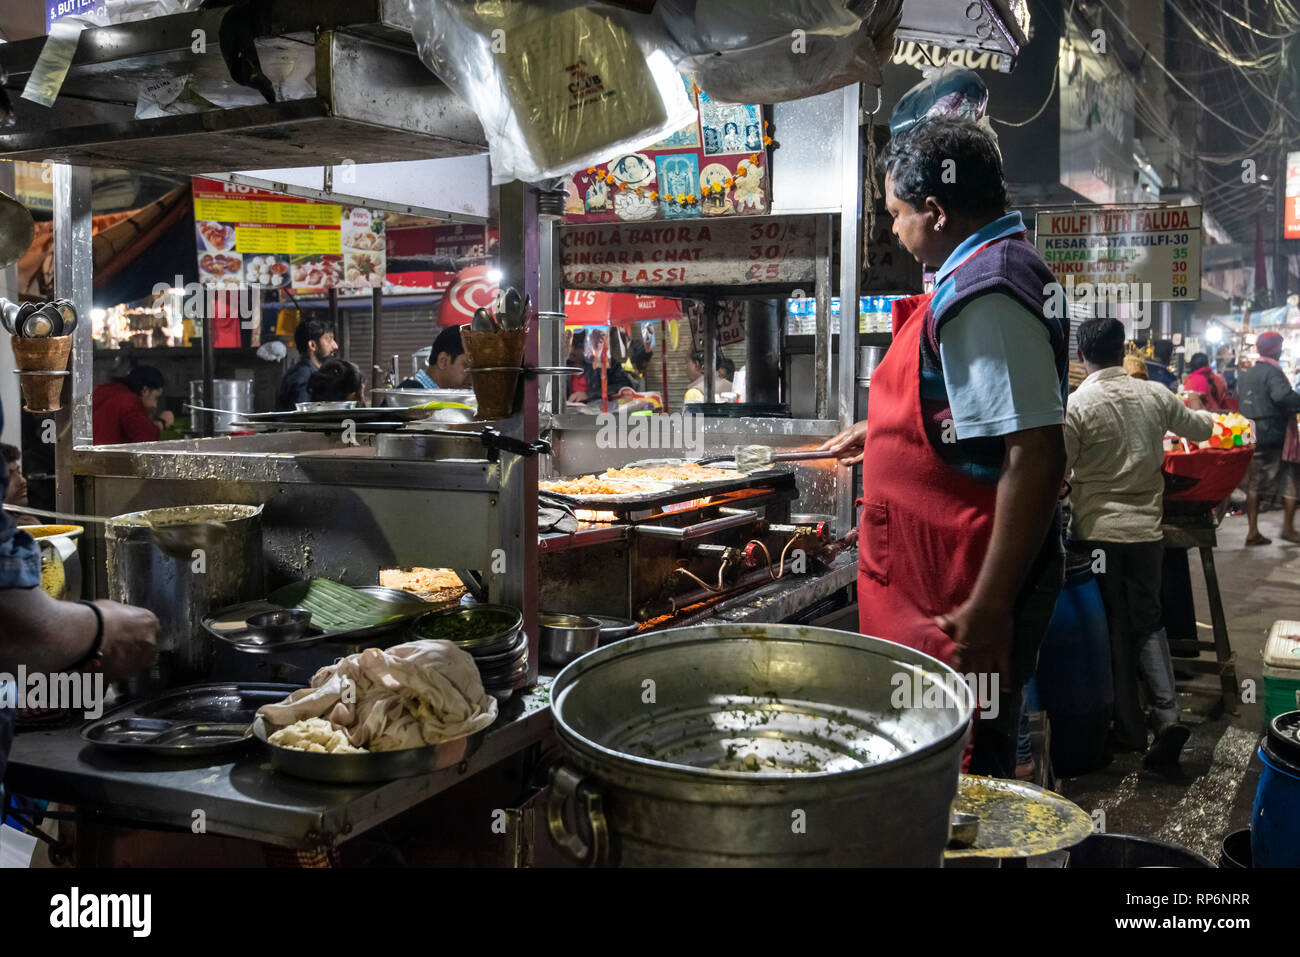 Typical atmospheric busy noisy night time street scene in Kolkata with a street food vendor making Mughlai paratha a popular Bengali street food. - Stock Image